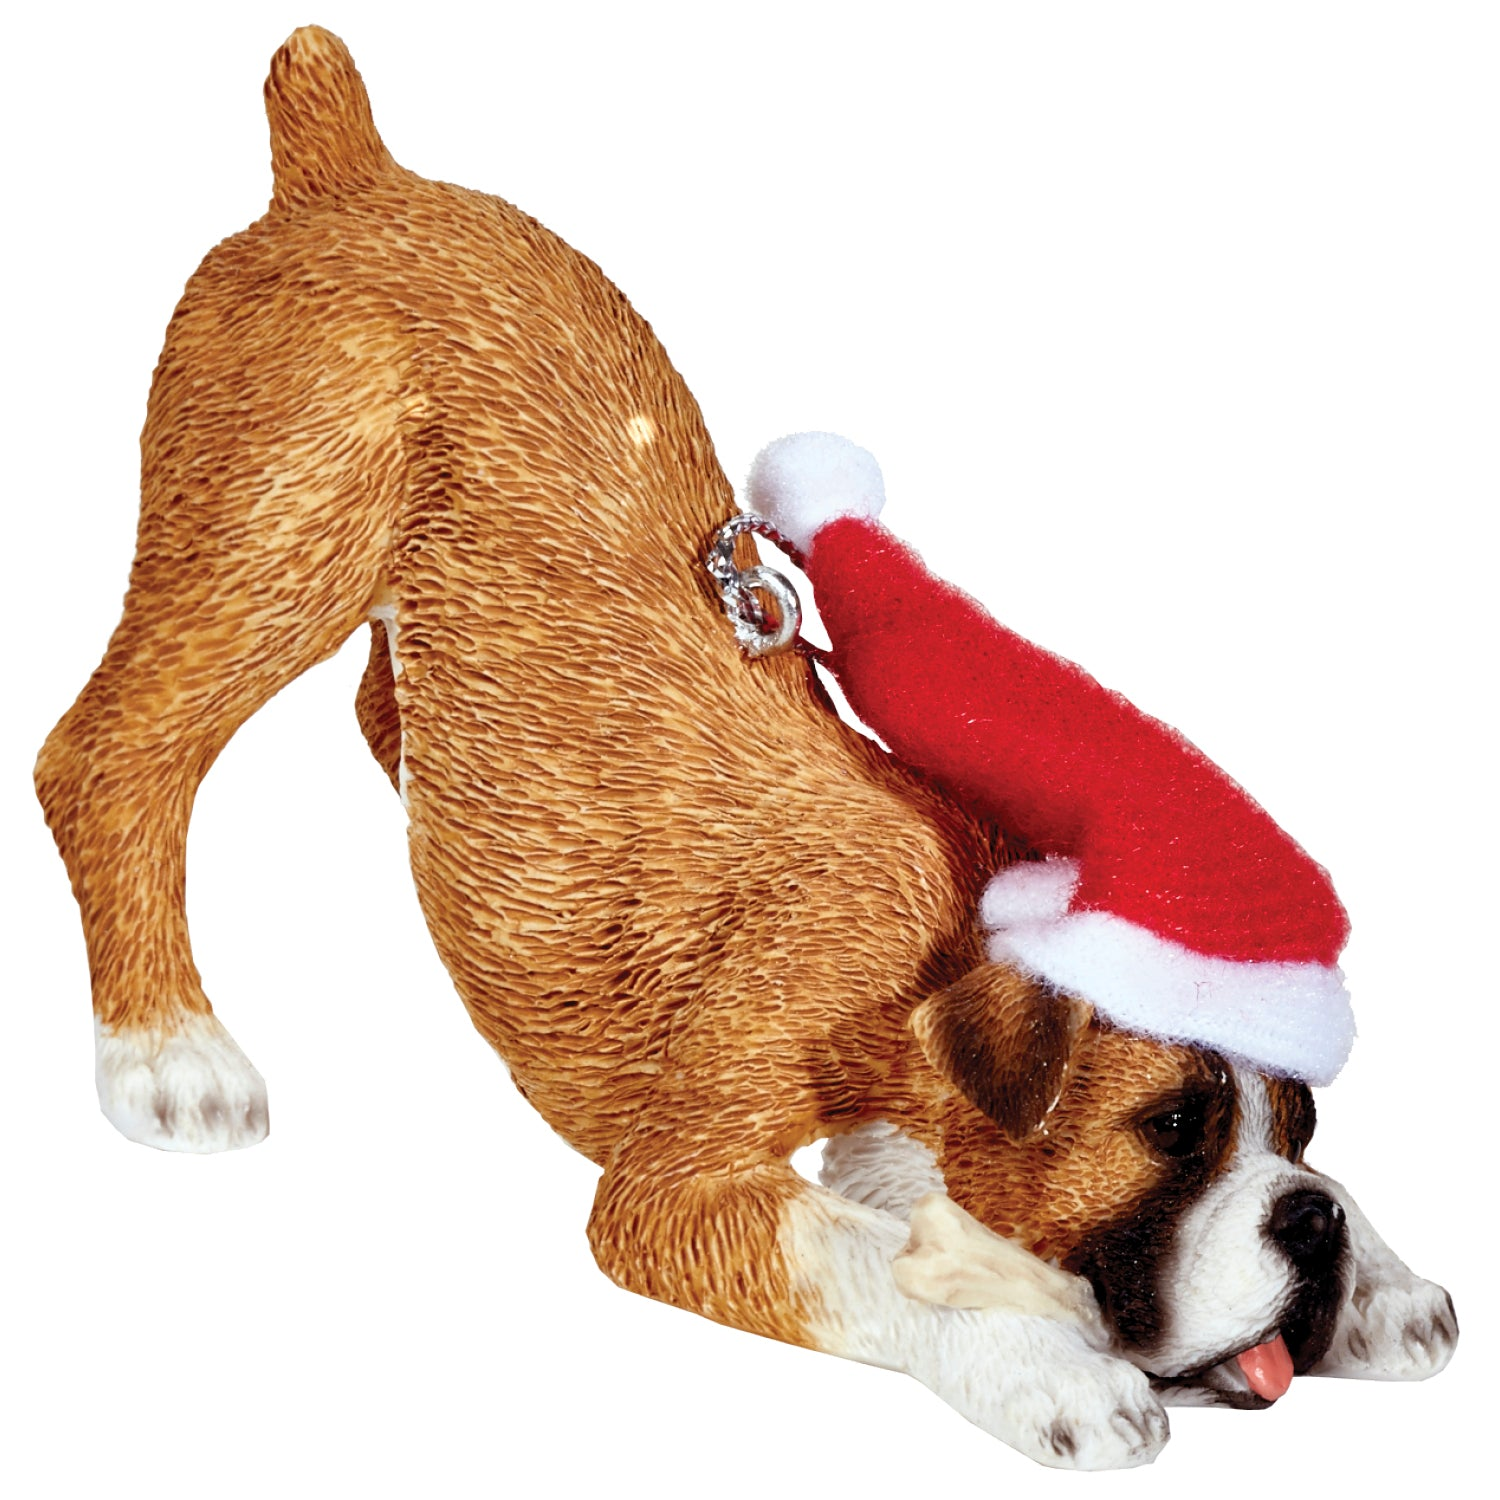 Sandicast Crouching FawnBoxer w/ Santa's Hat Christmas Dog Ornament